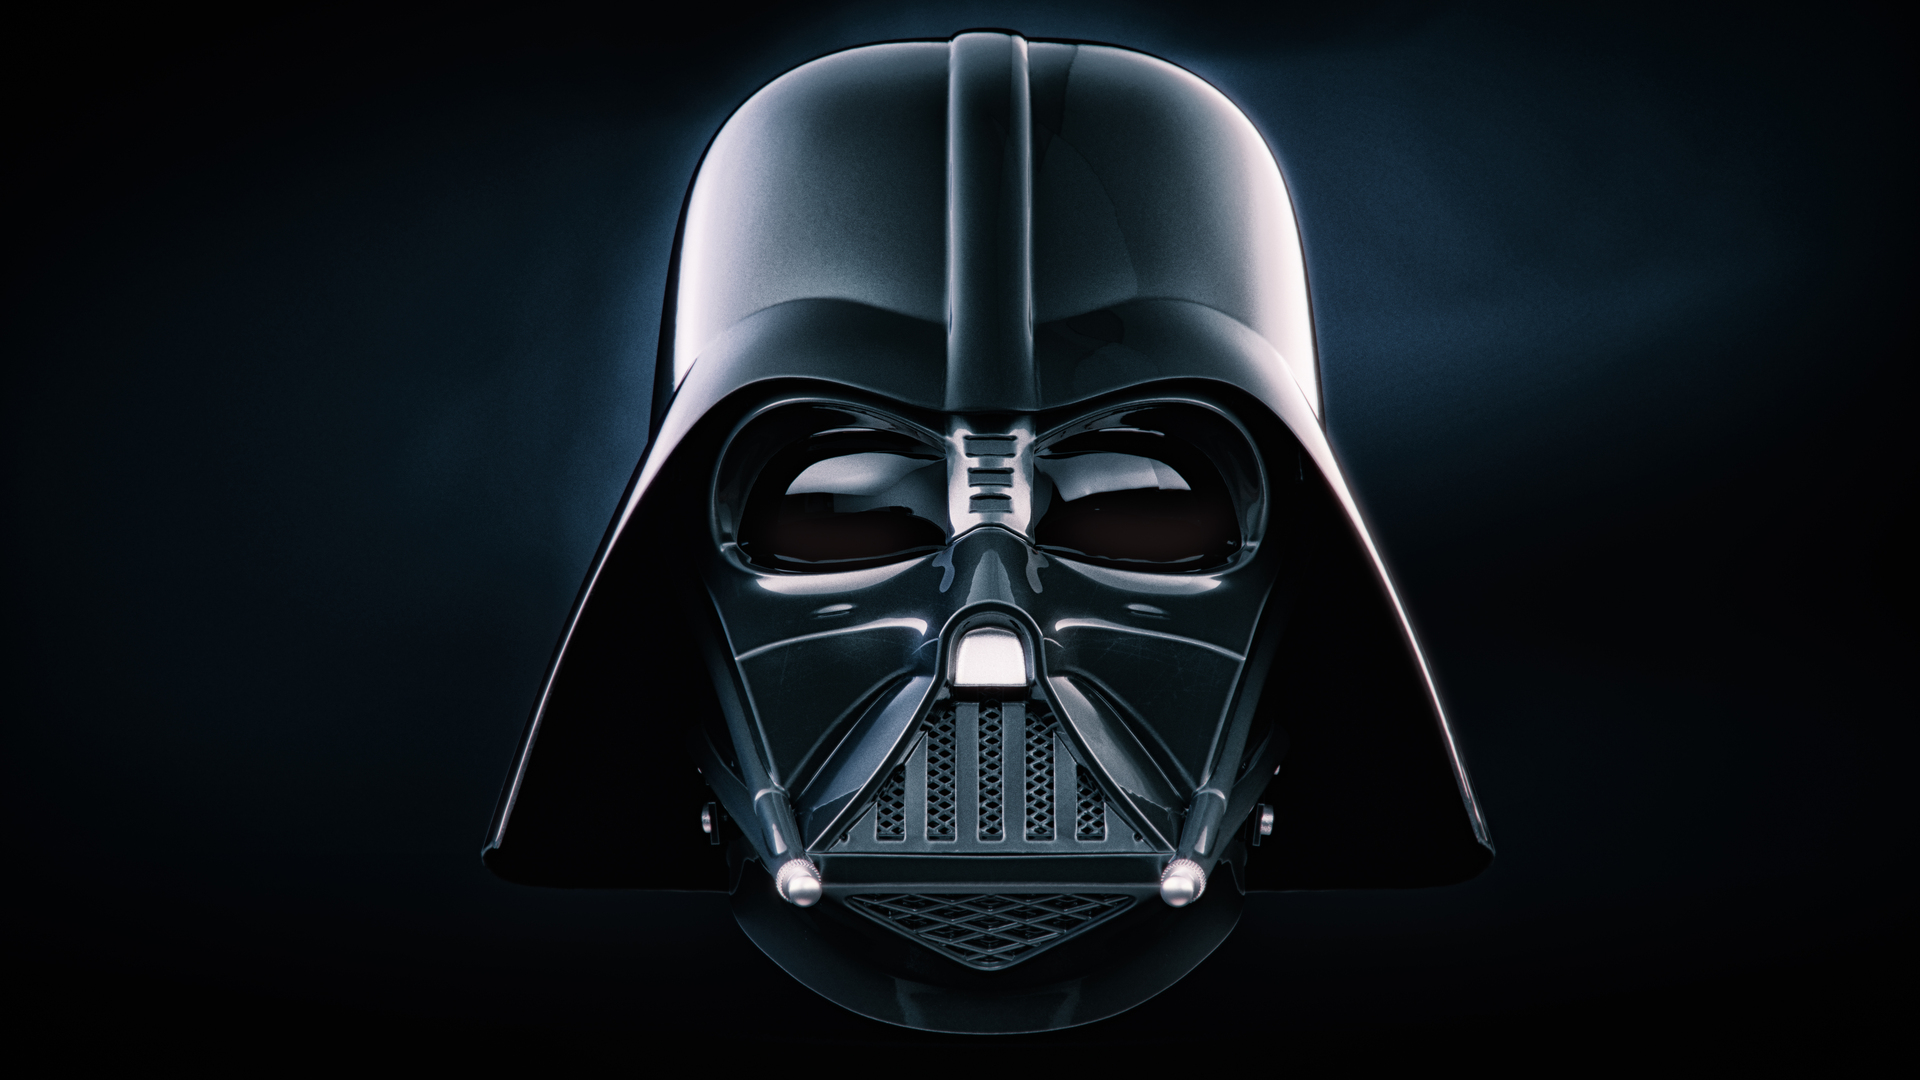 1920x1080 Darth Vader 5k Laptop Full Hd 1080p Hd 4k Wallpapers